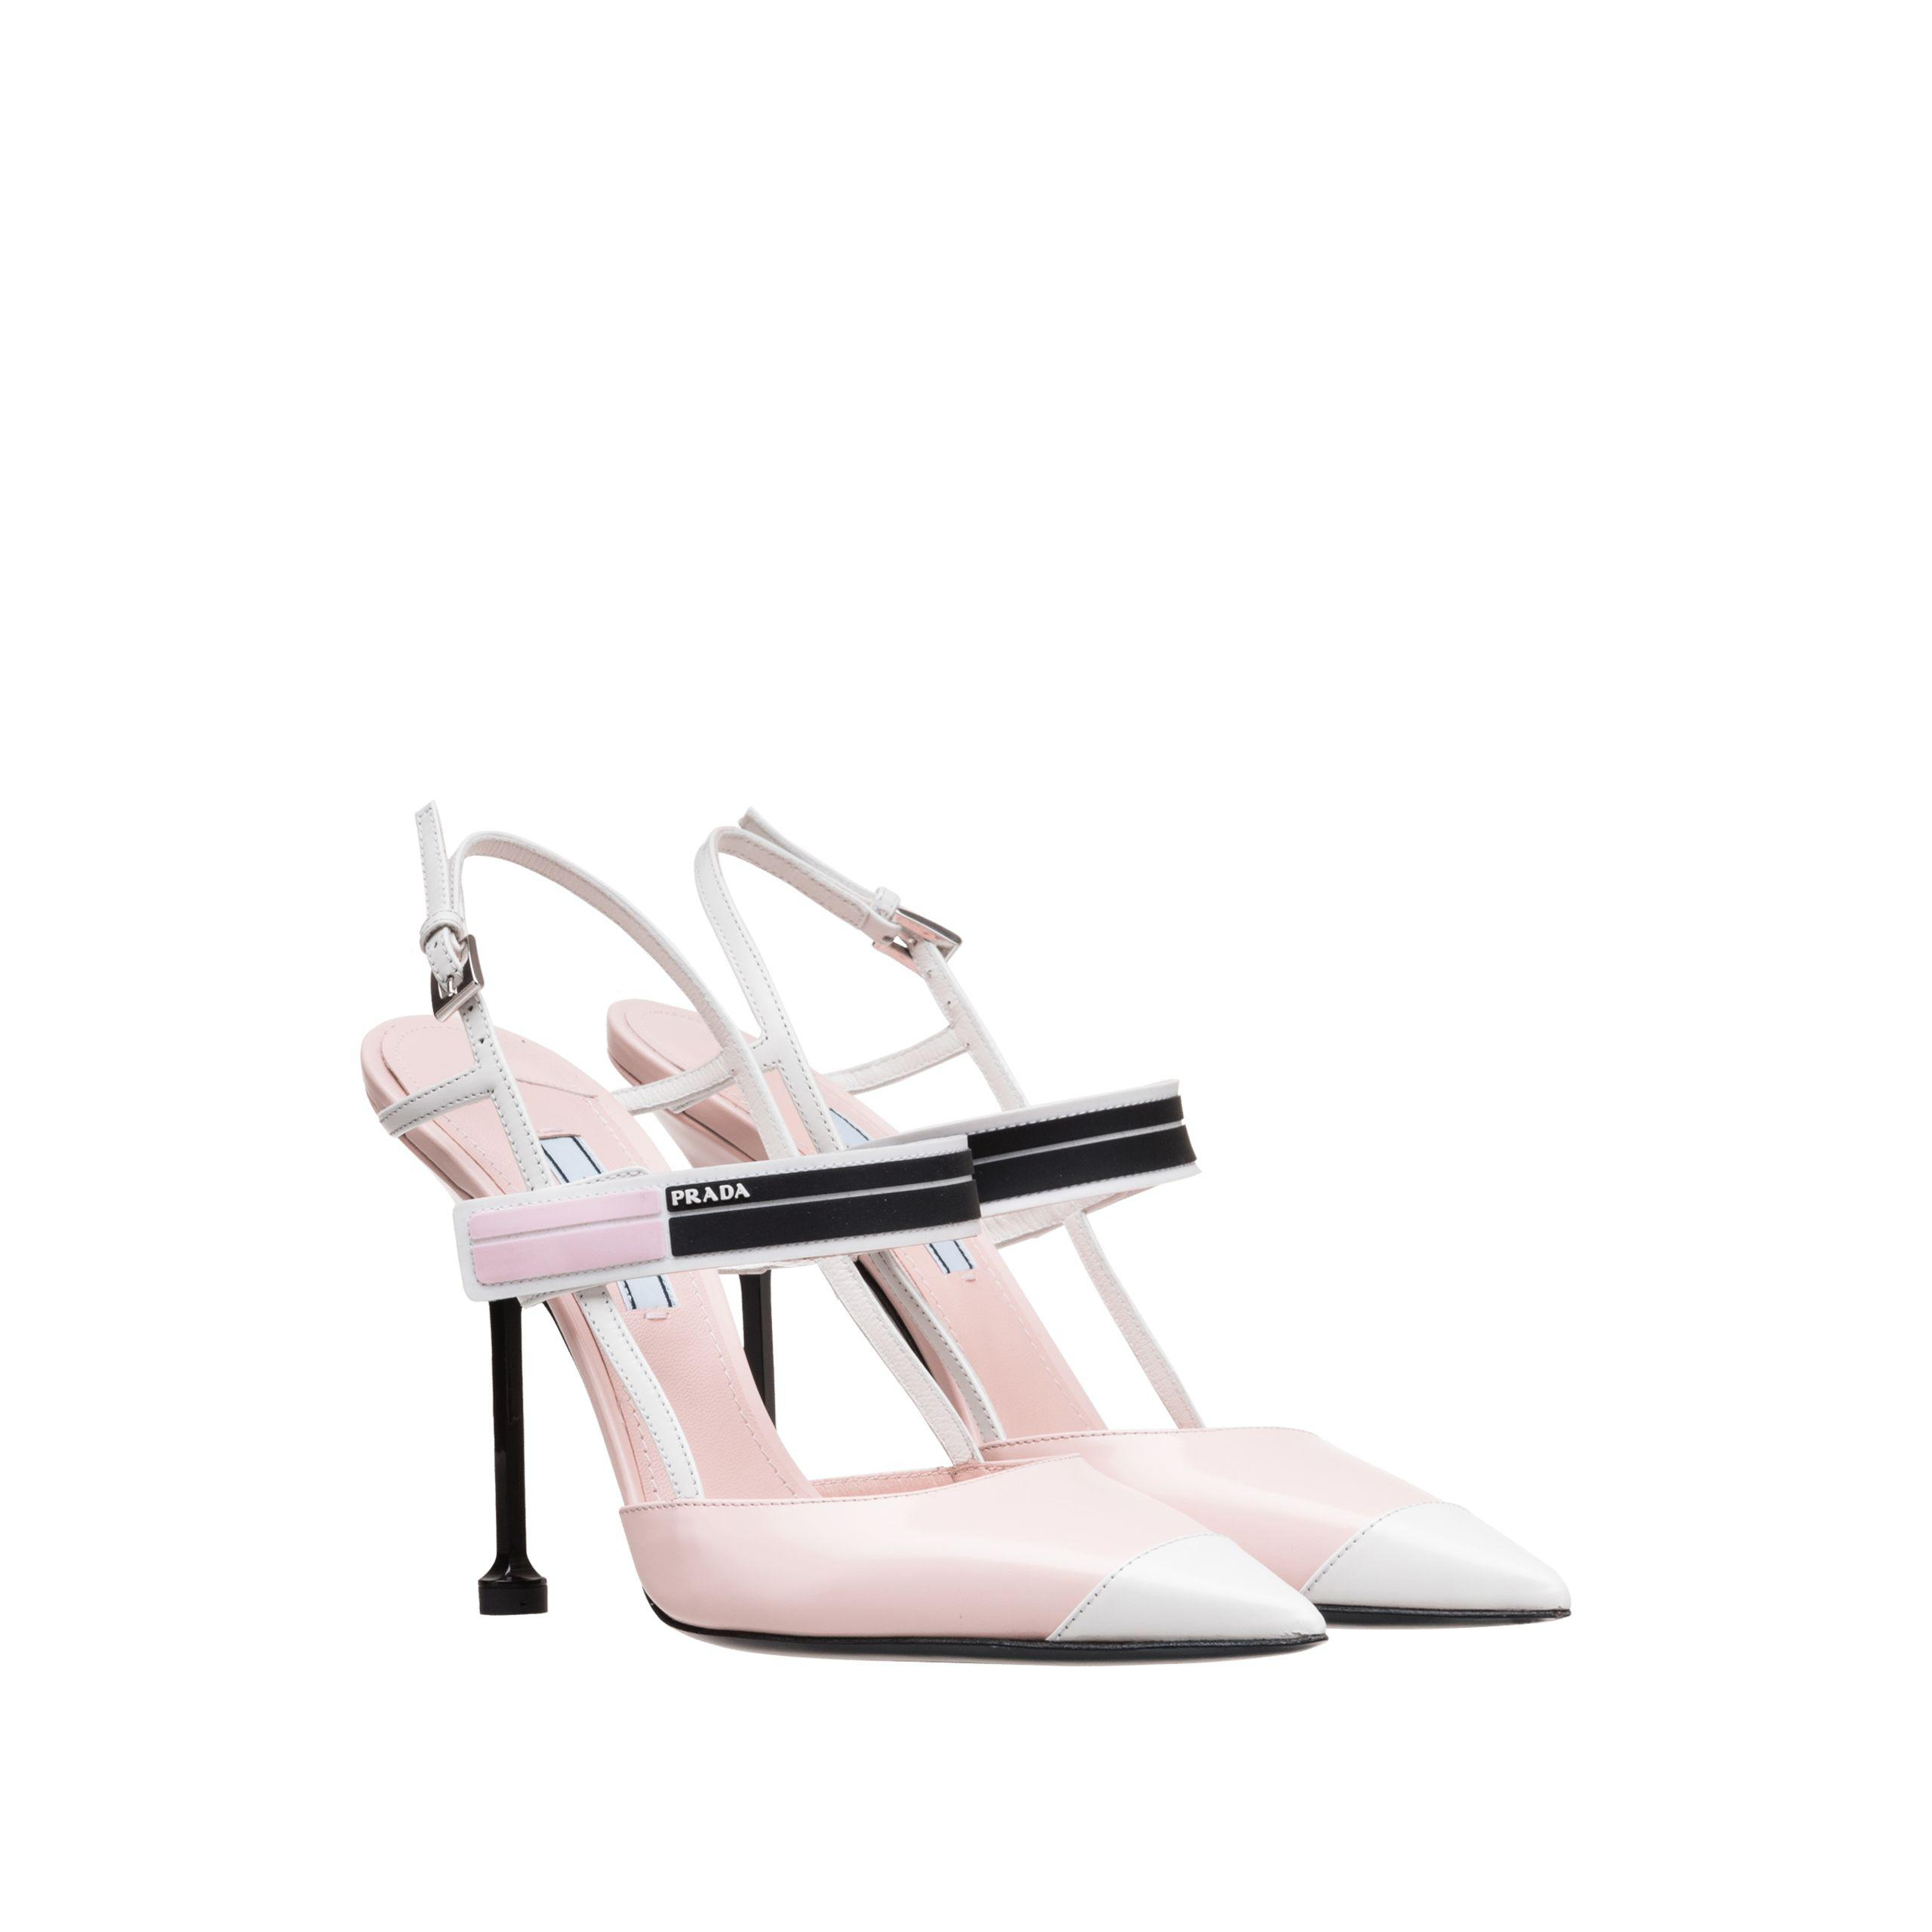 a1d7b047e Prada Two-tone Leather Pointy Toe Pumps in Pink - Lyst